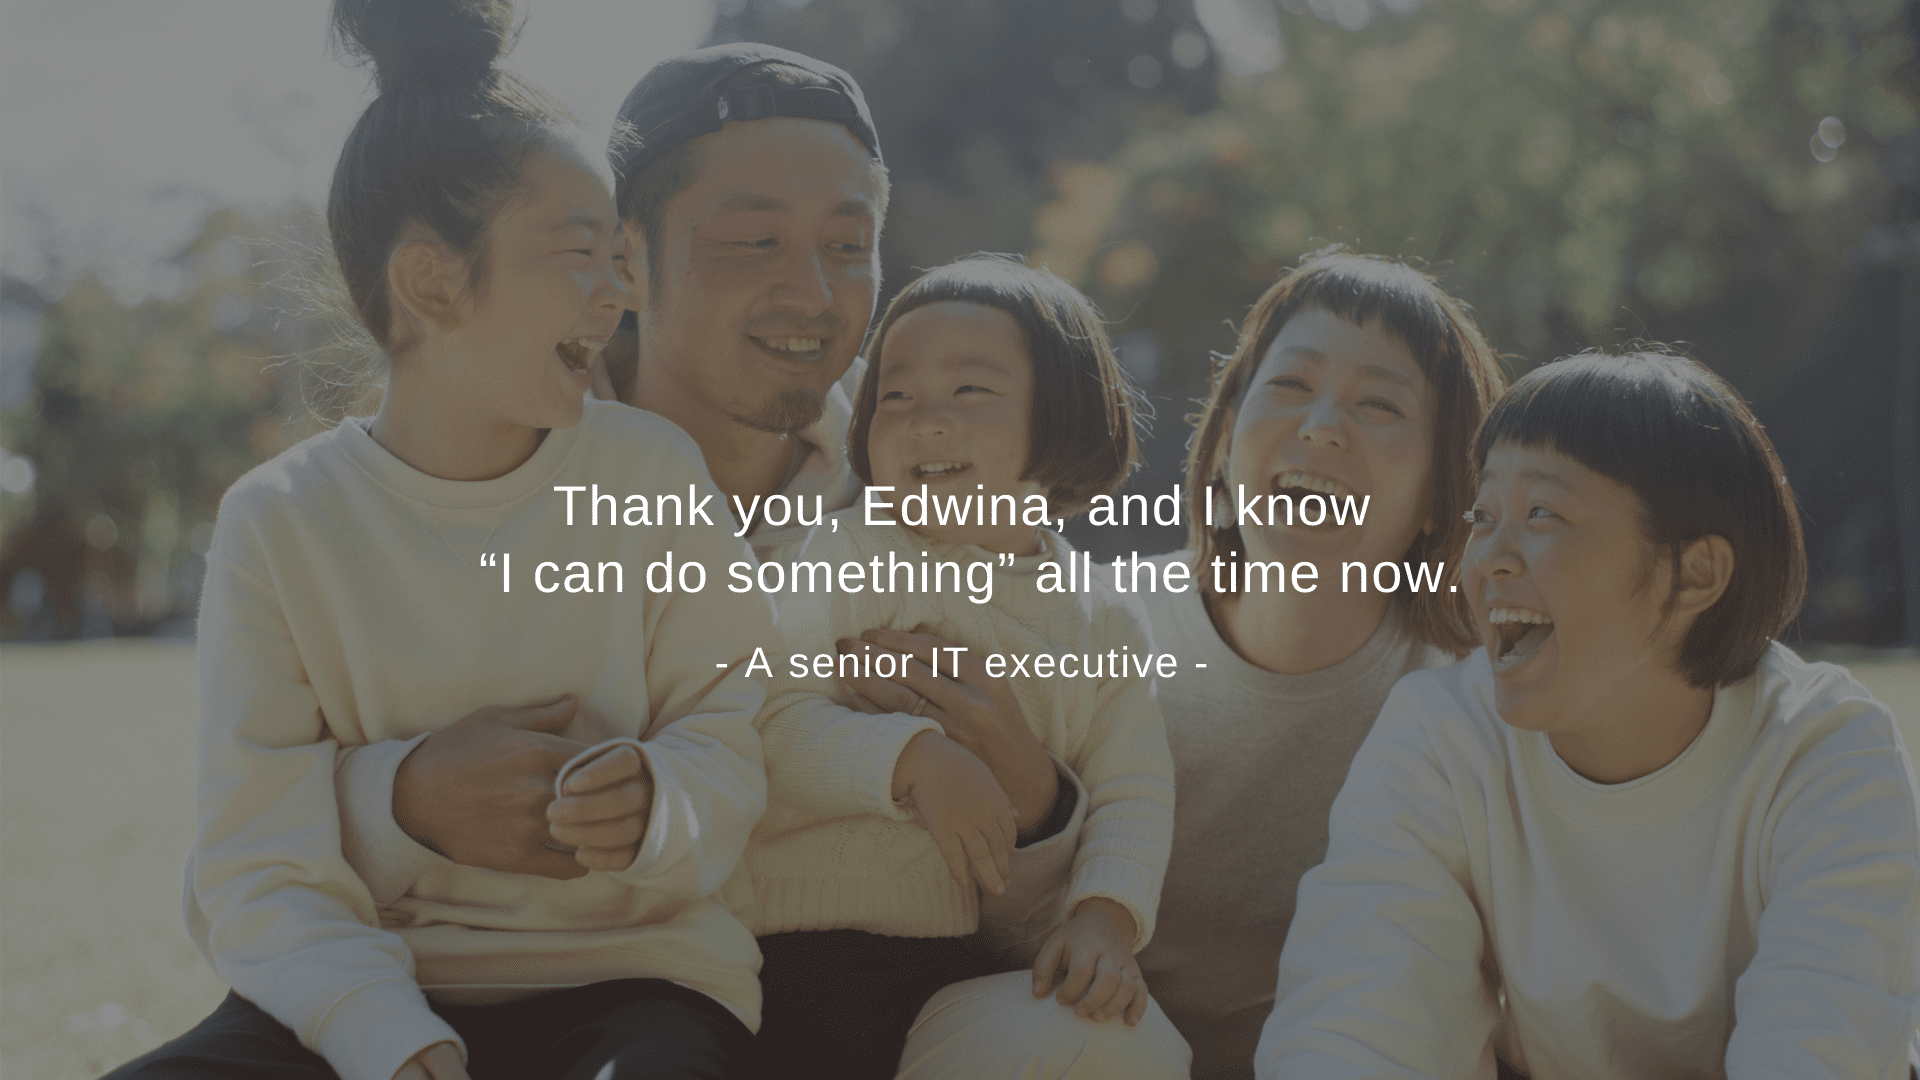 """Thank you, Edwina, and I know ""I can do something"" all the time now."" A senior IT executive"